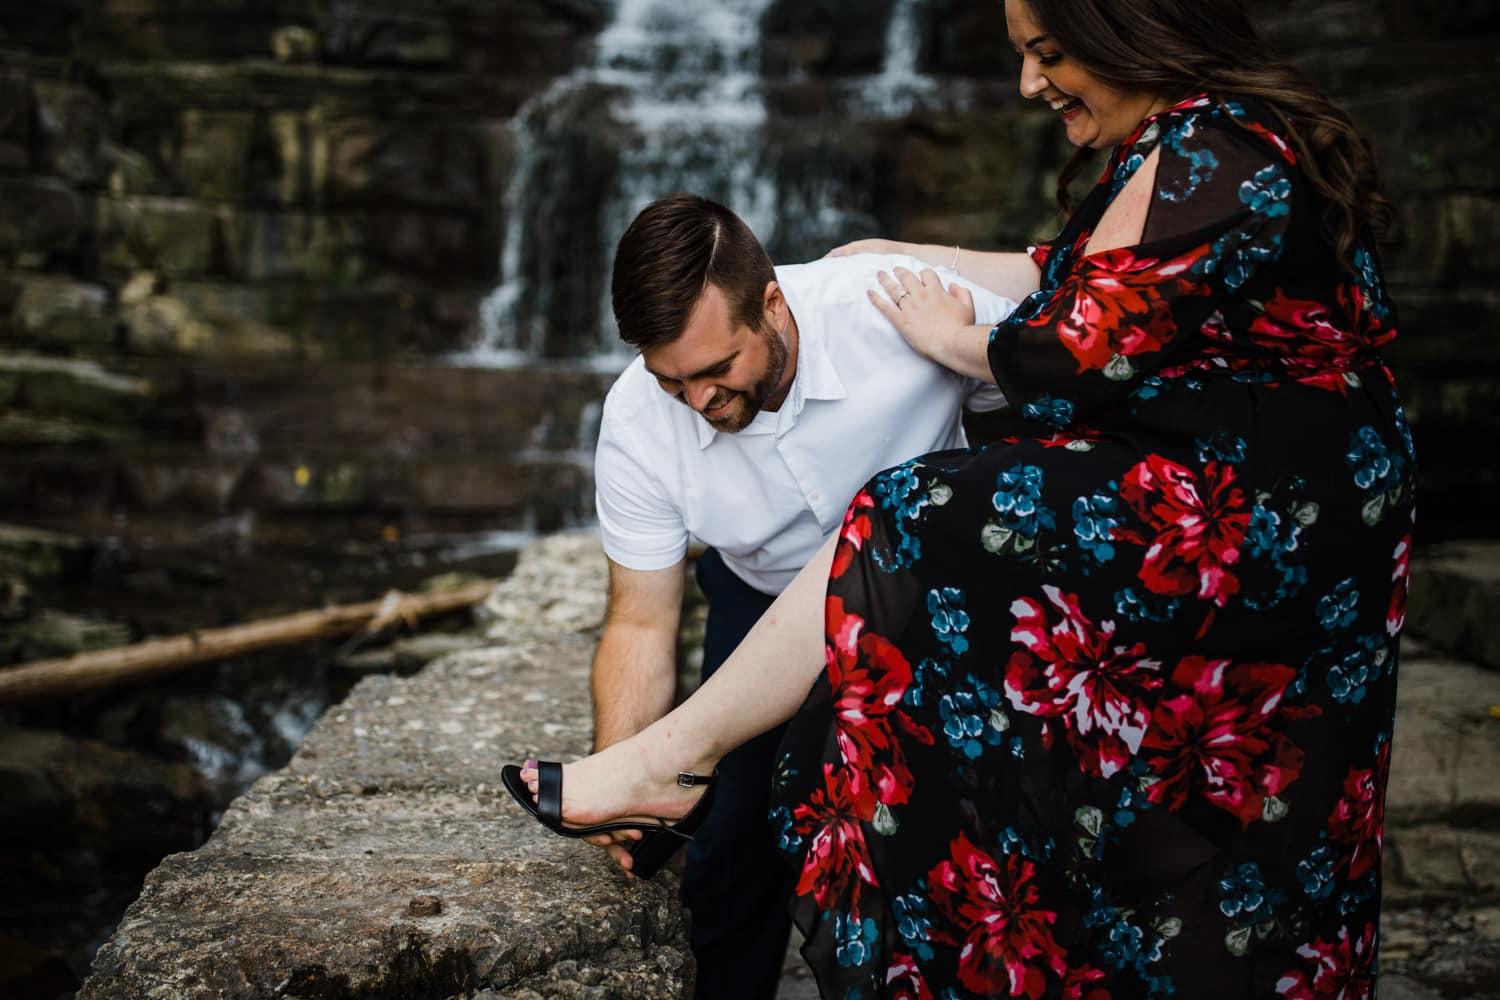 man helps woman put on her shoes by a waterfall